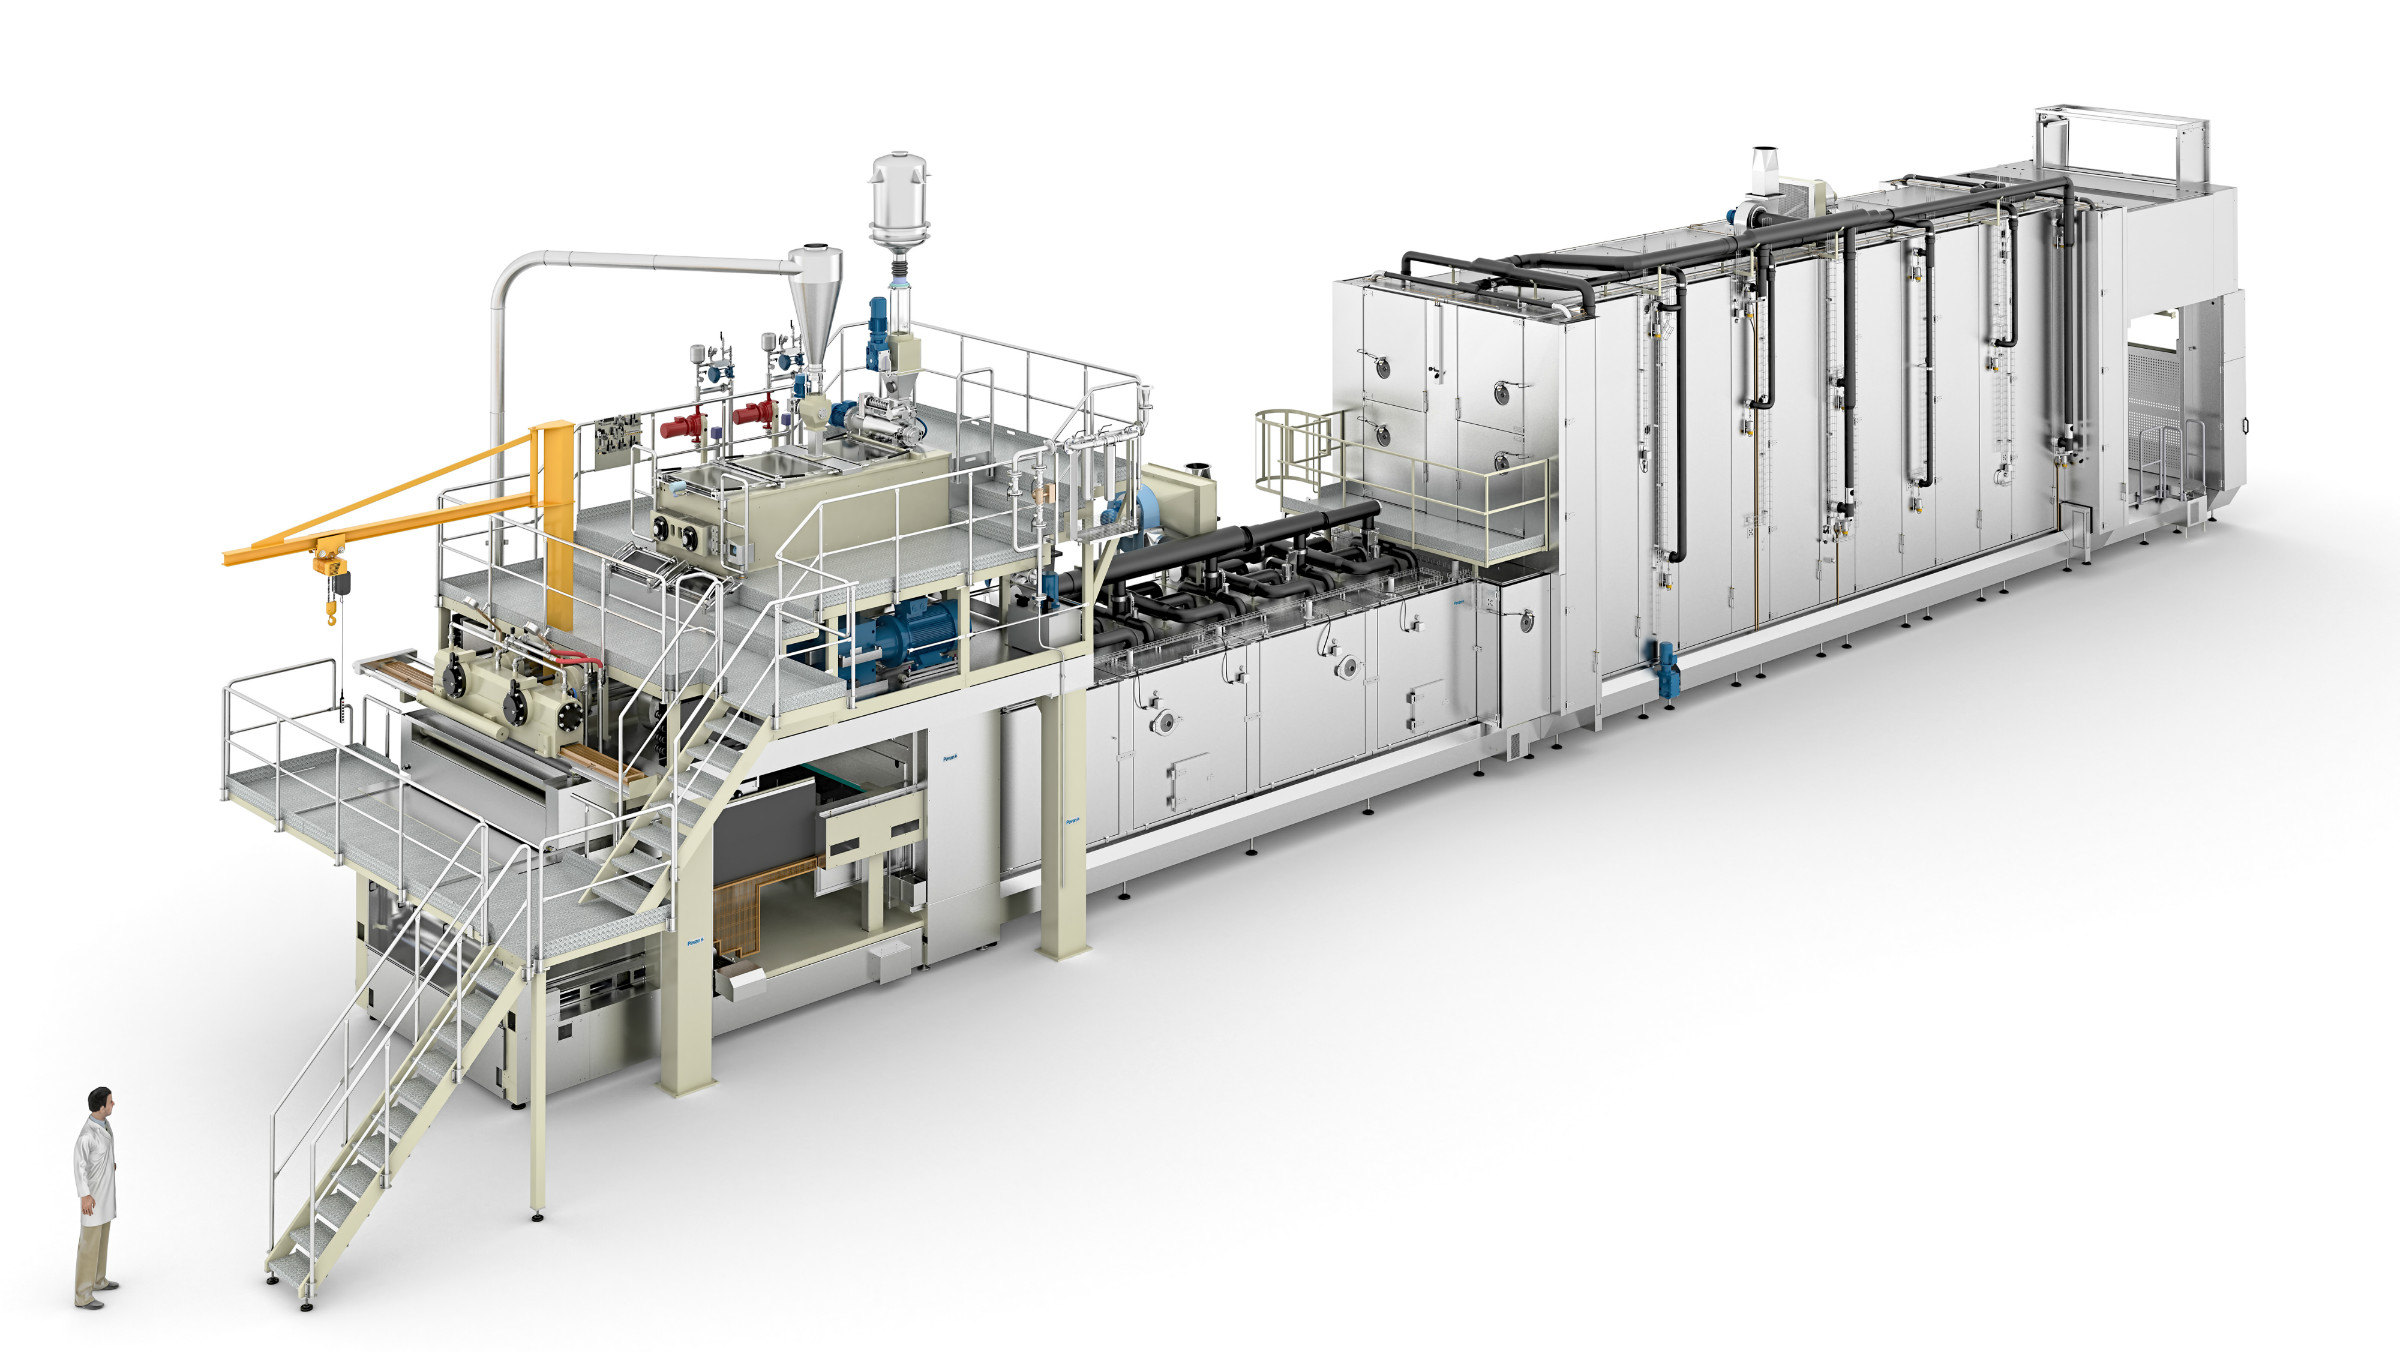 New Multidrive Technology From Pavan Rapid And Frequent Changes Of Thermo Hygrometric Conditions Are The Key To Success